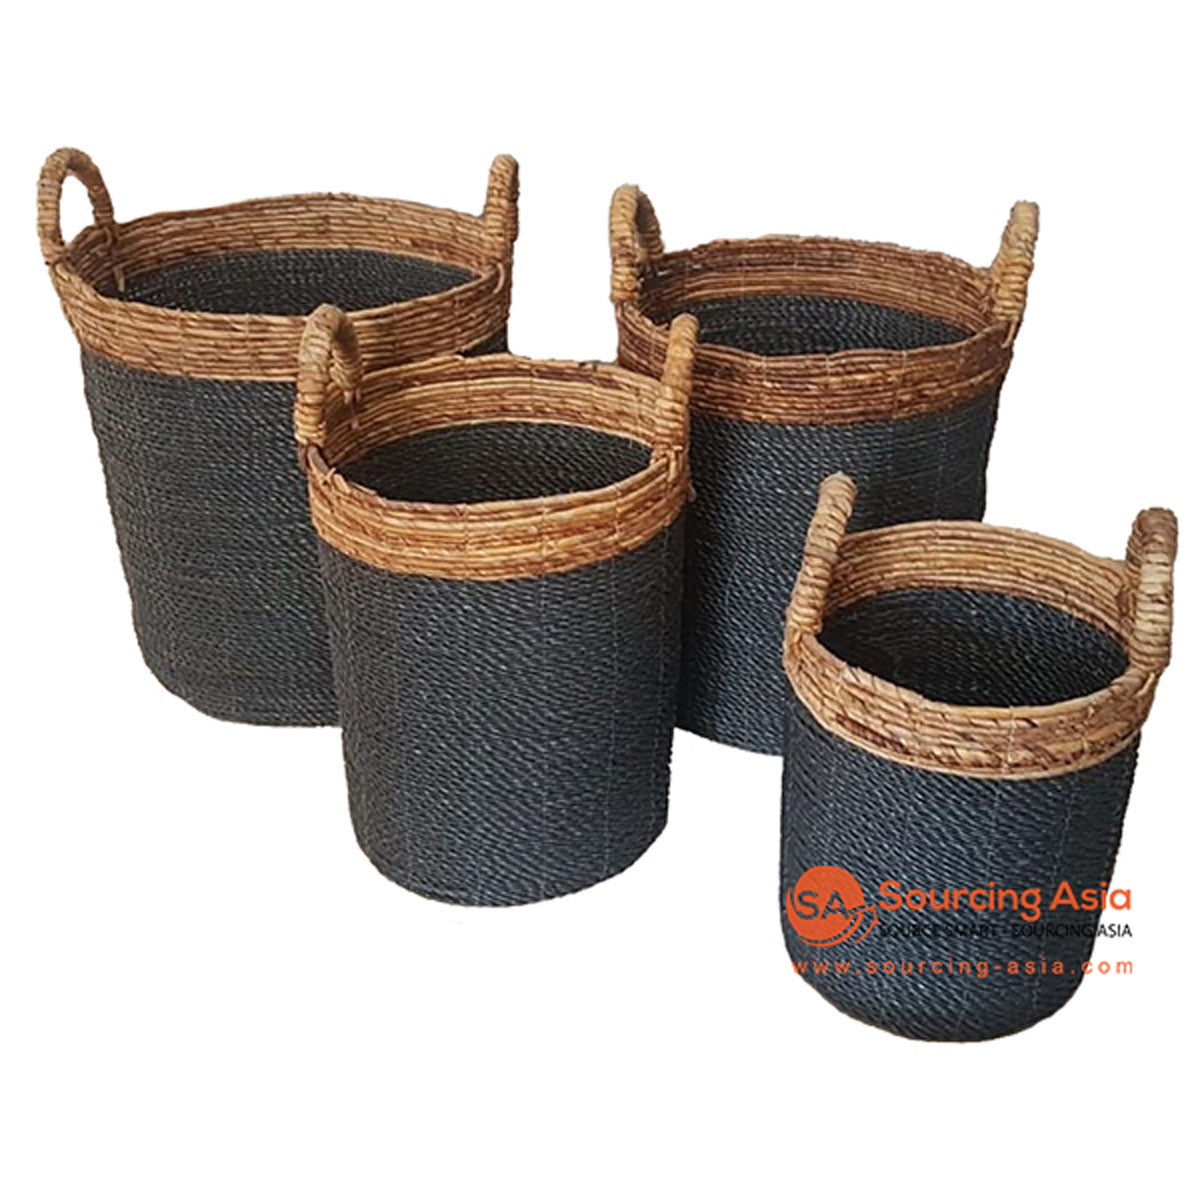 SHL057-16 SET OF FOUR SEAGRASS BASKETS WITH NATURAL BANANA